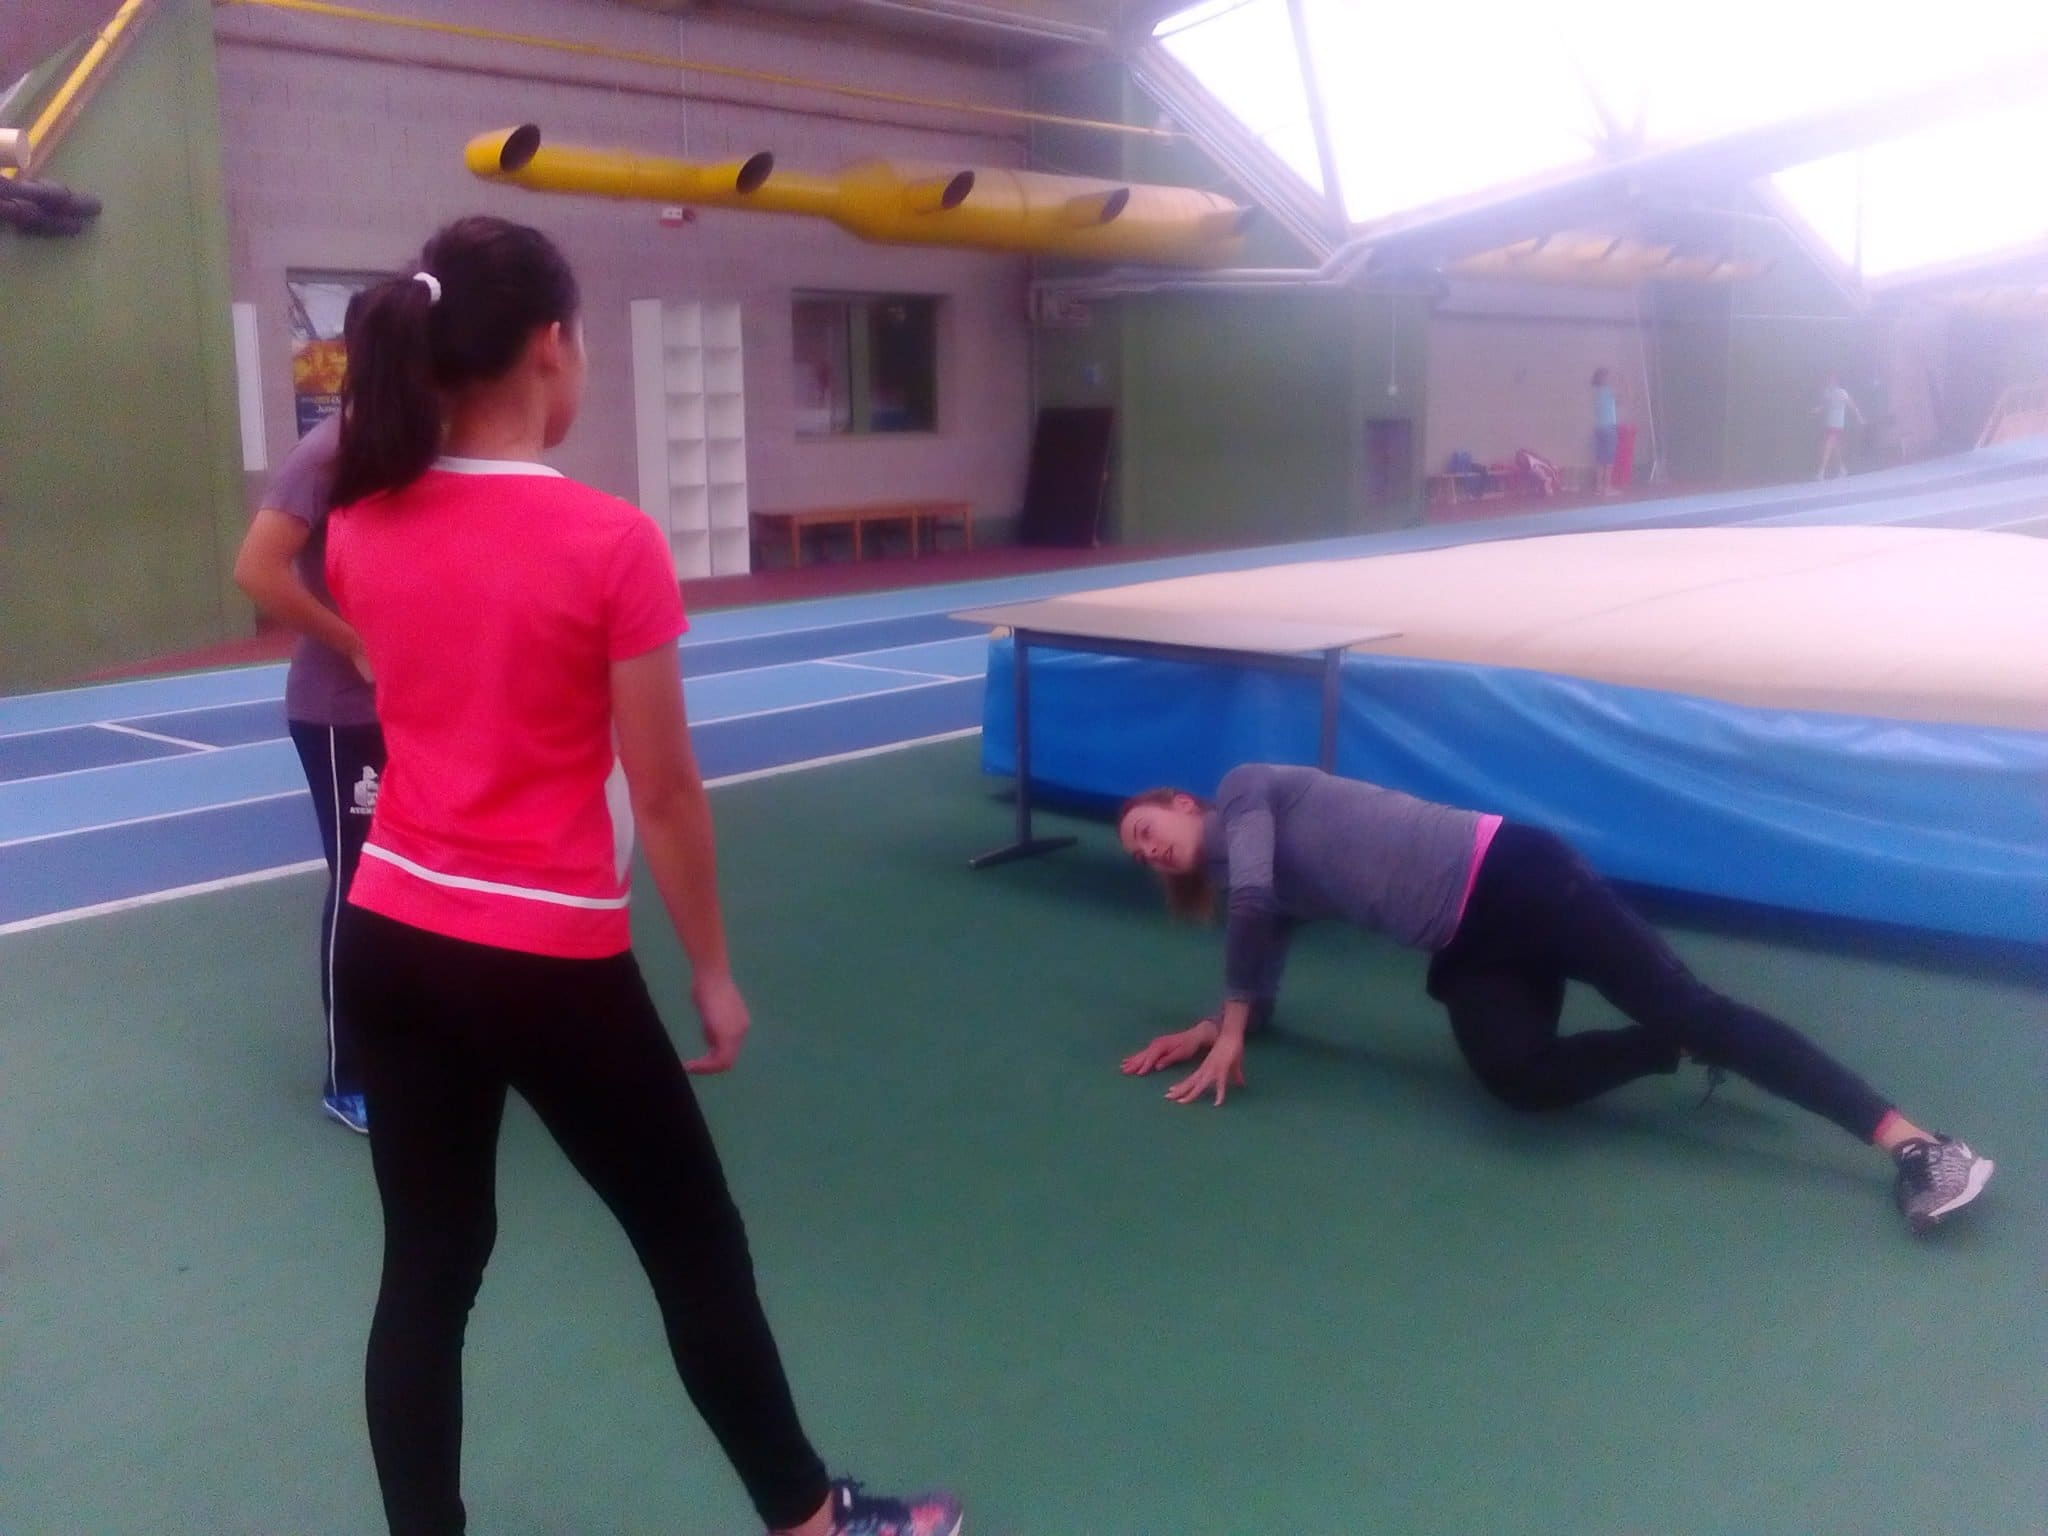 Alexandra Burghardt took a break on her busy Olympic training schedule to spend time with ADDU Athletes teaching proper warm-up, stretching, and drills.